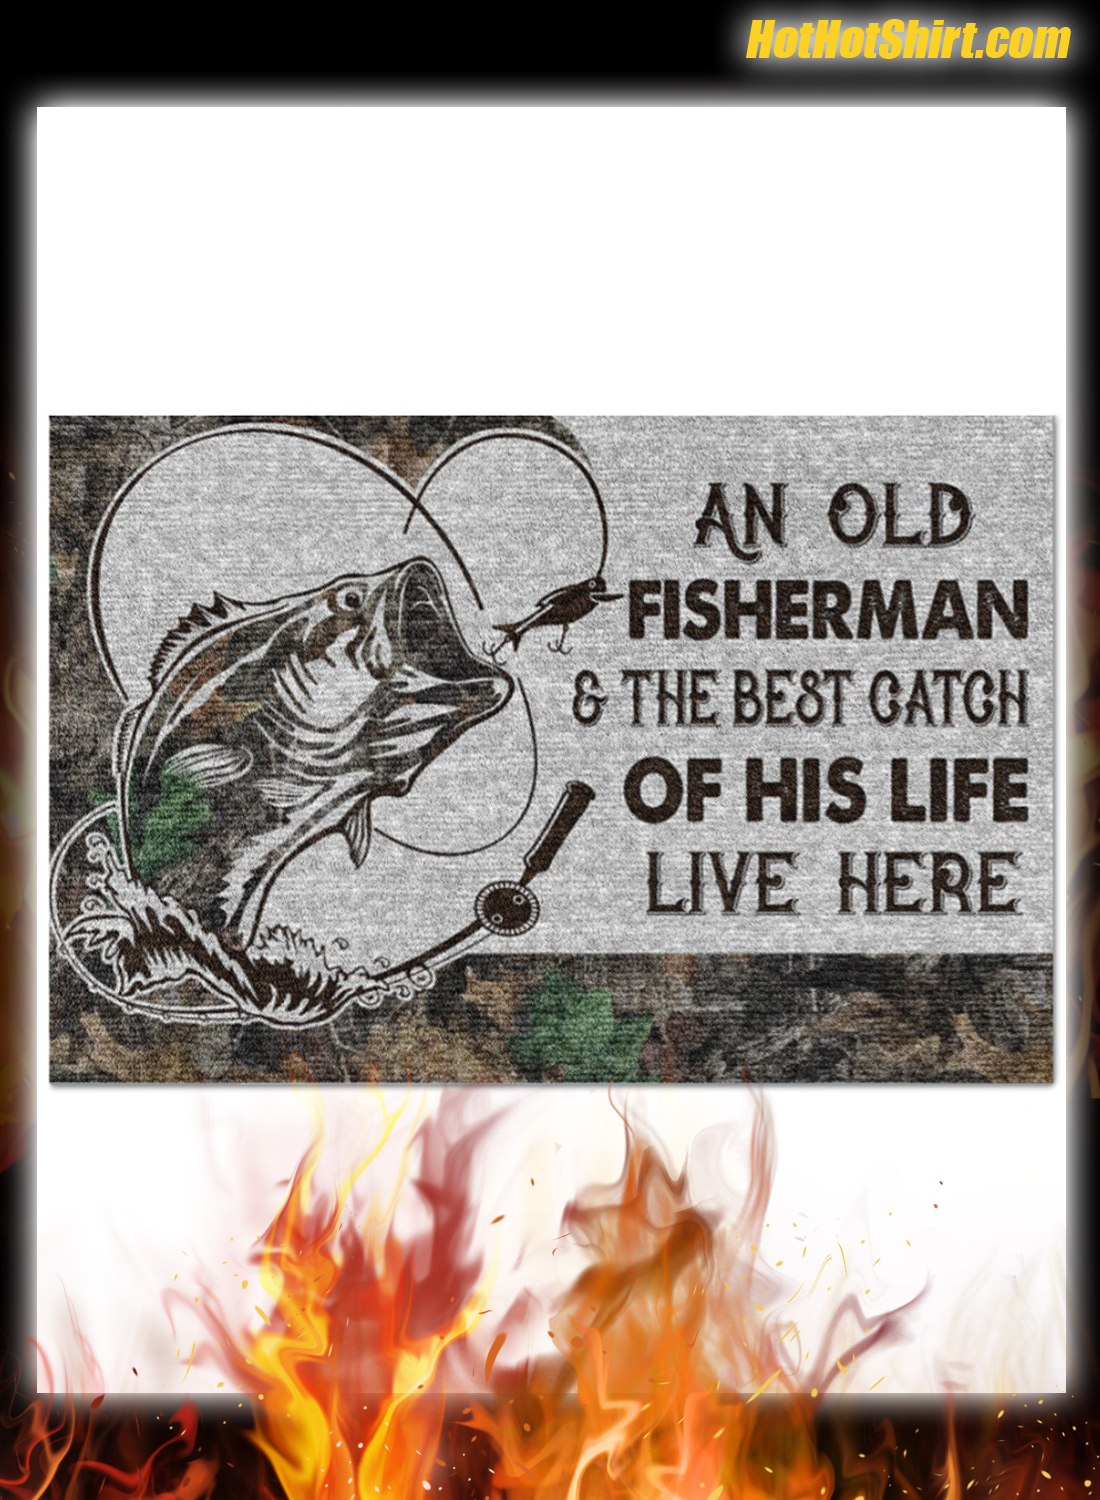 Personalized Name An Old Fisherman And The Best Catch Of His Life Here Doormat 3